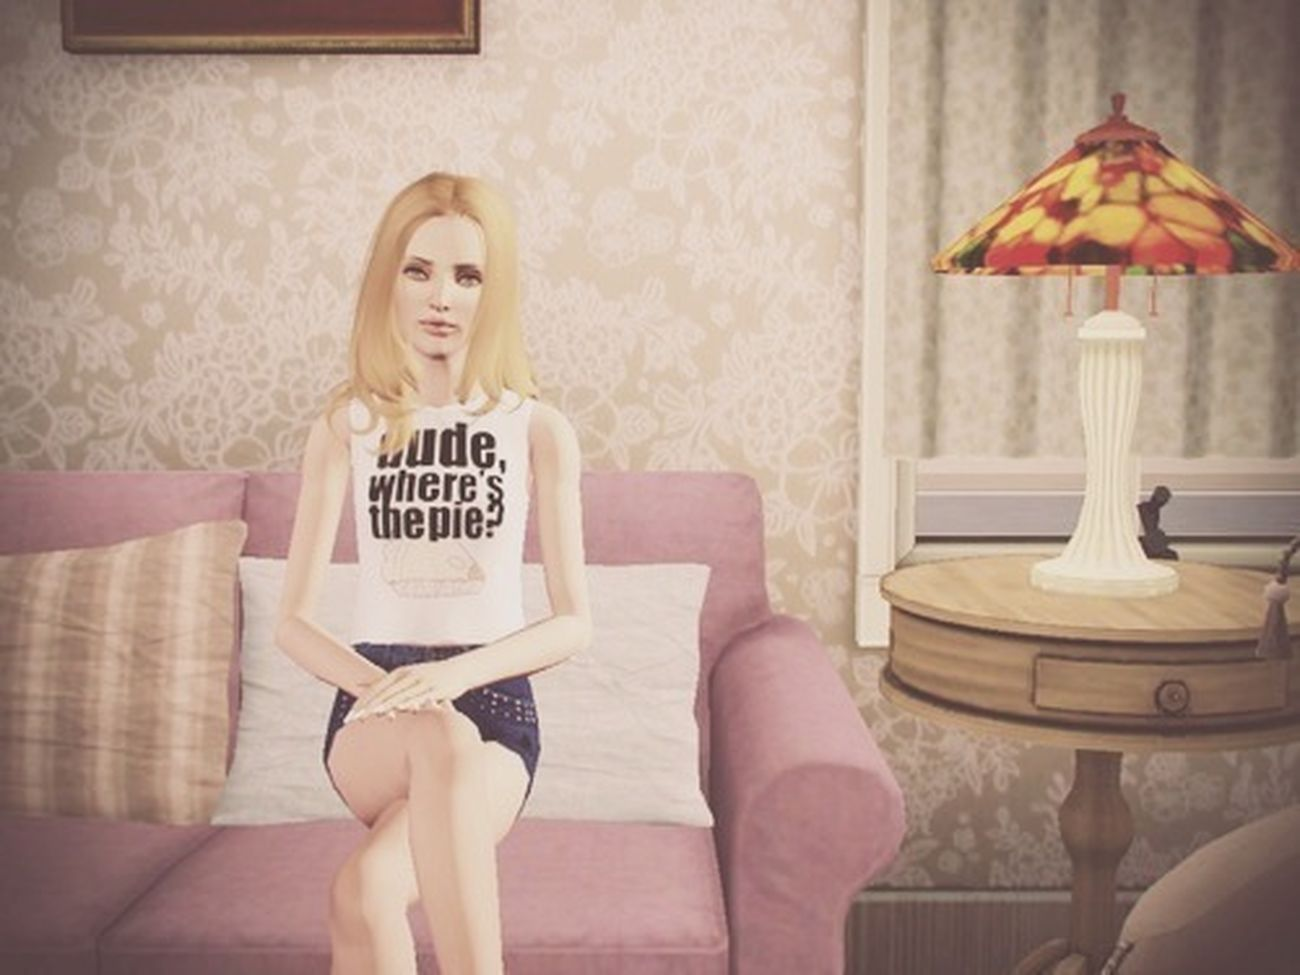 And that's how I editing her today ✌ I love the top that she wears! Simgirl  Sims